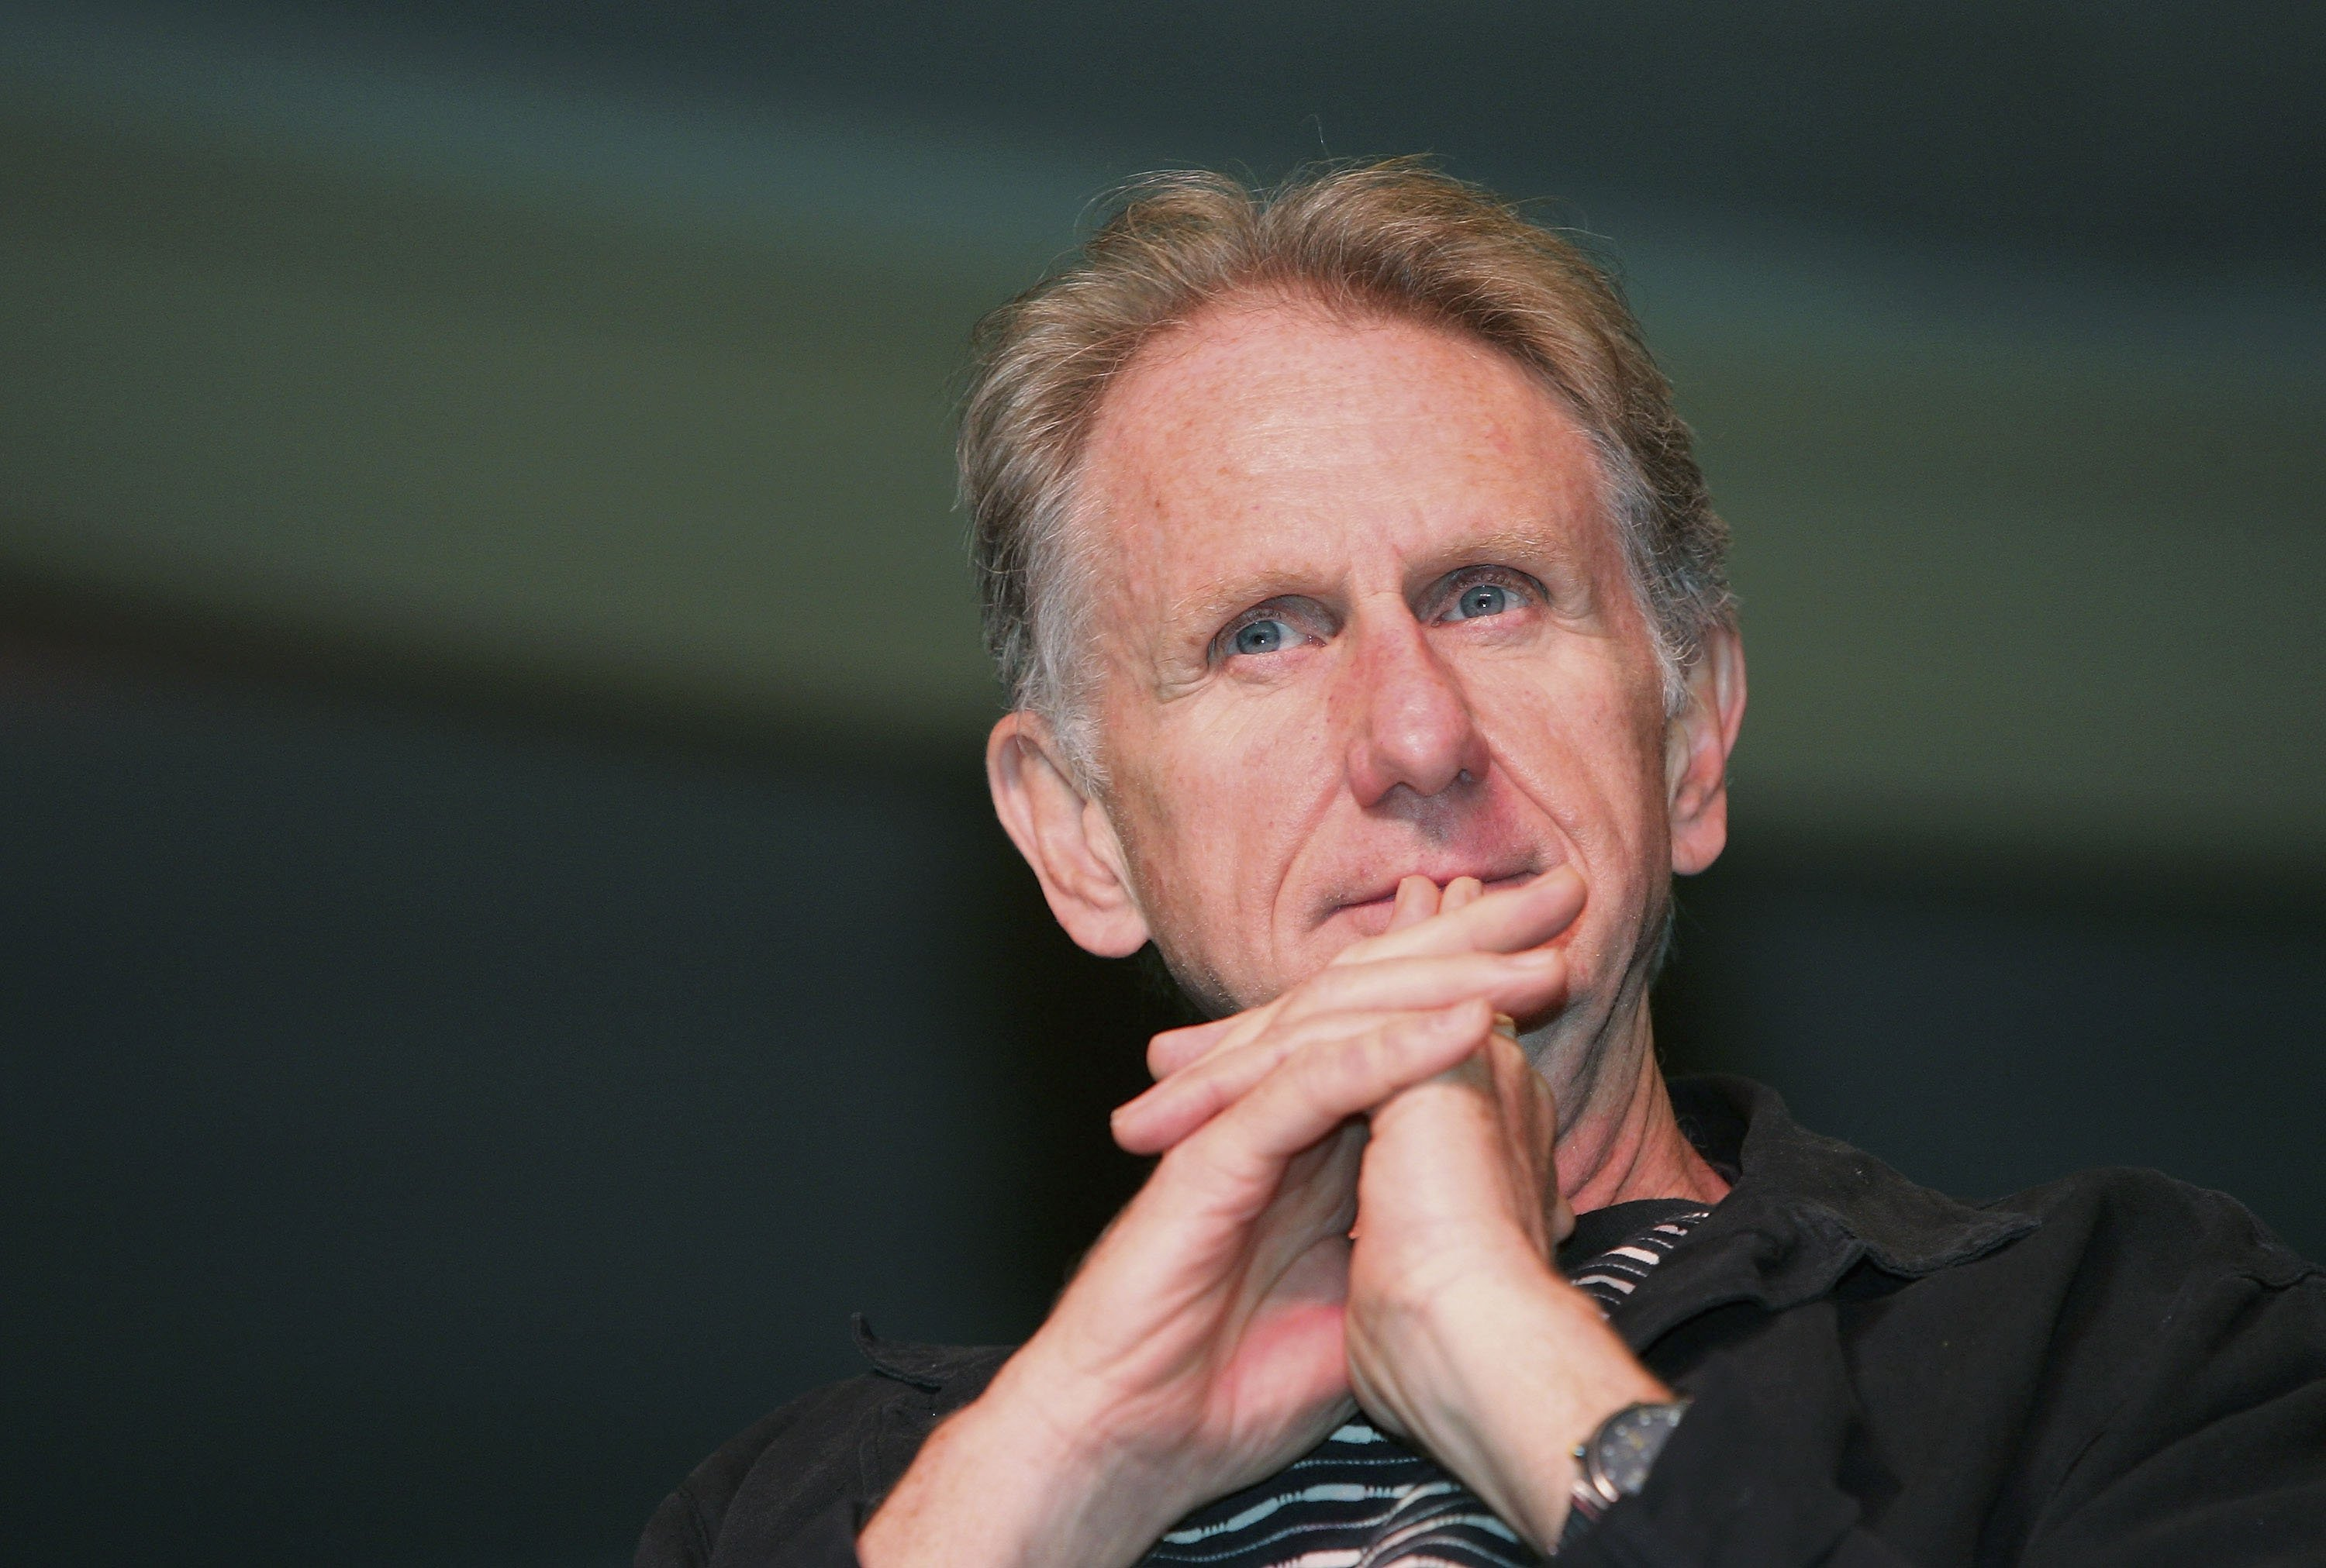 """Rene Auberjonois at the """"Star Trek"""" convention on August 14, 2005 in Las Vegas, Nevada 